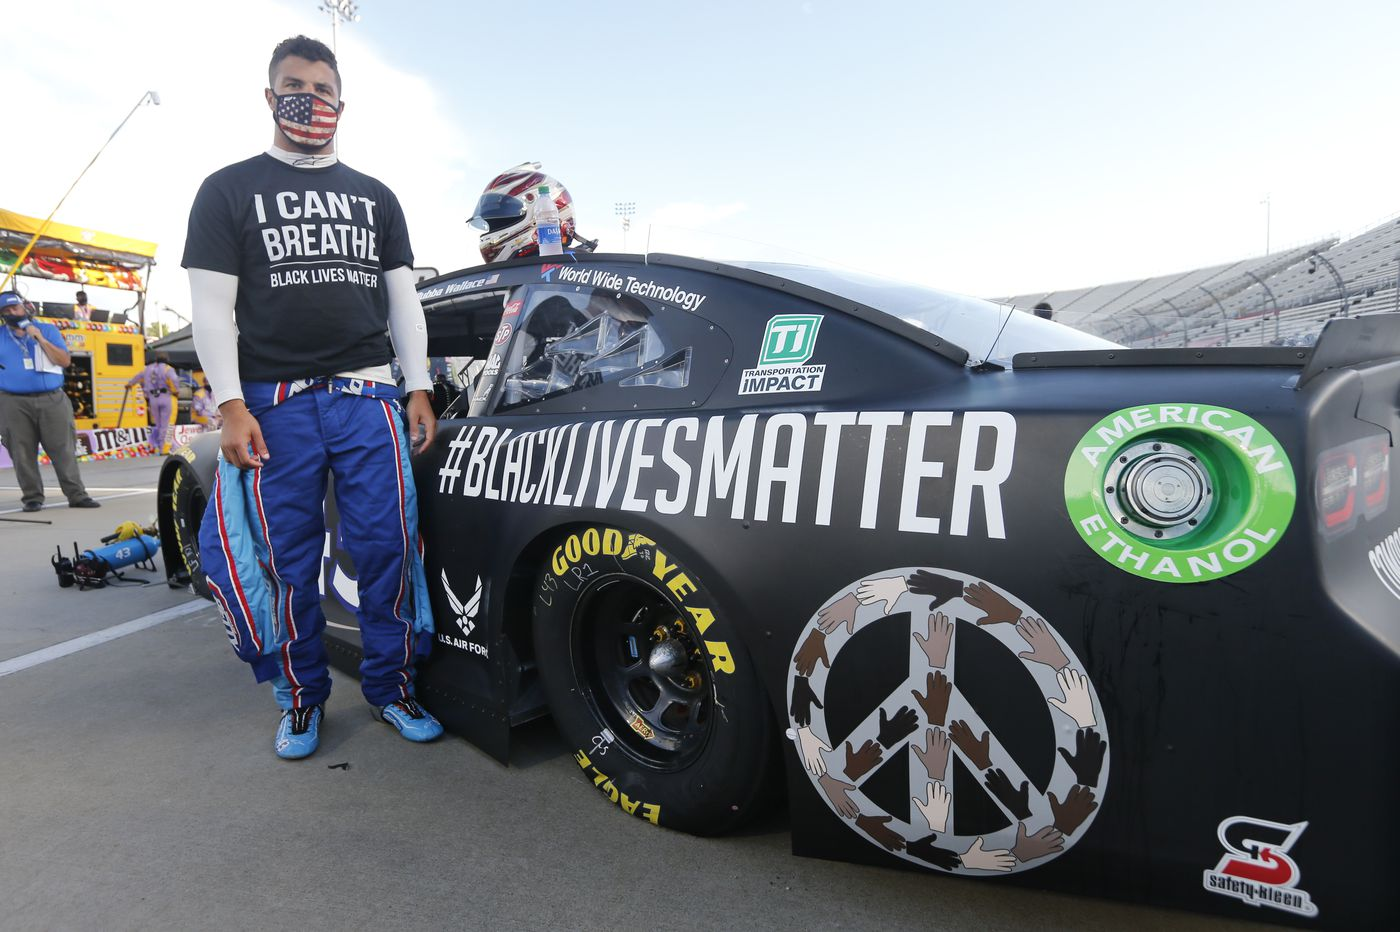 Sports chatter: Bubba Wallace takes the lead on NASCAR outlawing confederate flag display at its races